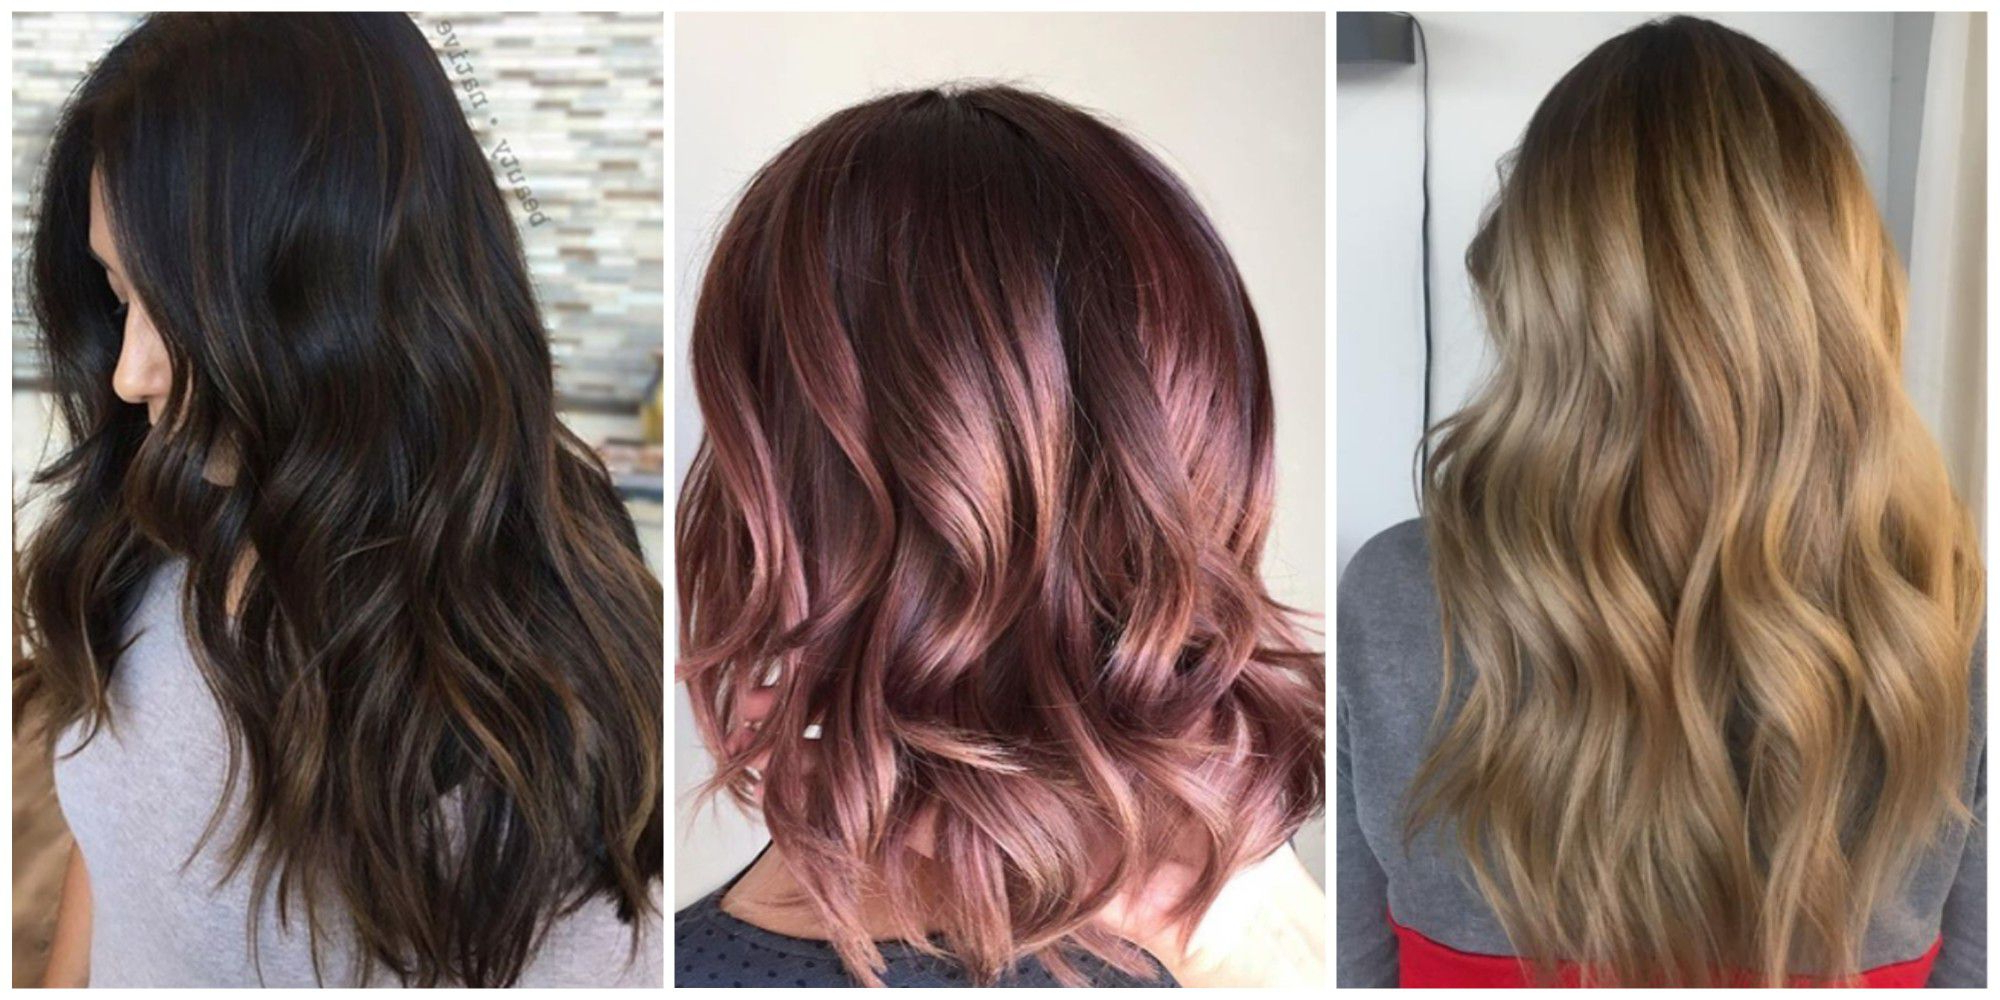 15 Hair Color Ideas And Styles For 2018 – Best Hair Colors And Products With Short Bob Hairstyles With Dimensional Coloring (View 3 of 20)